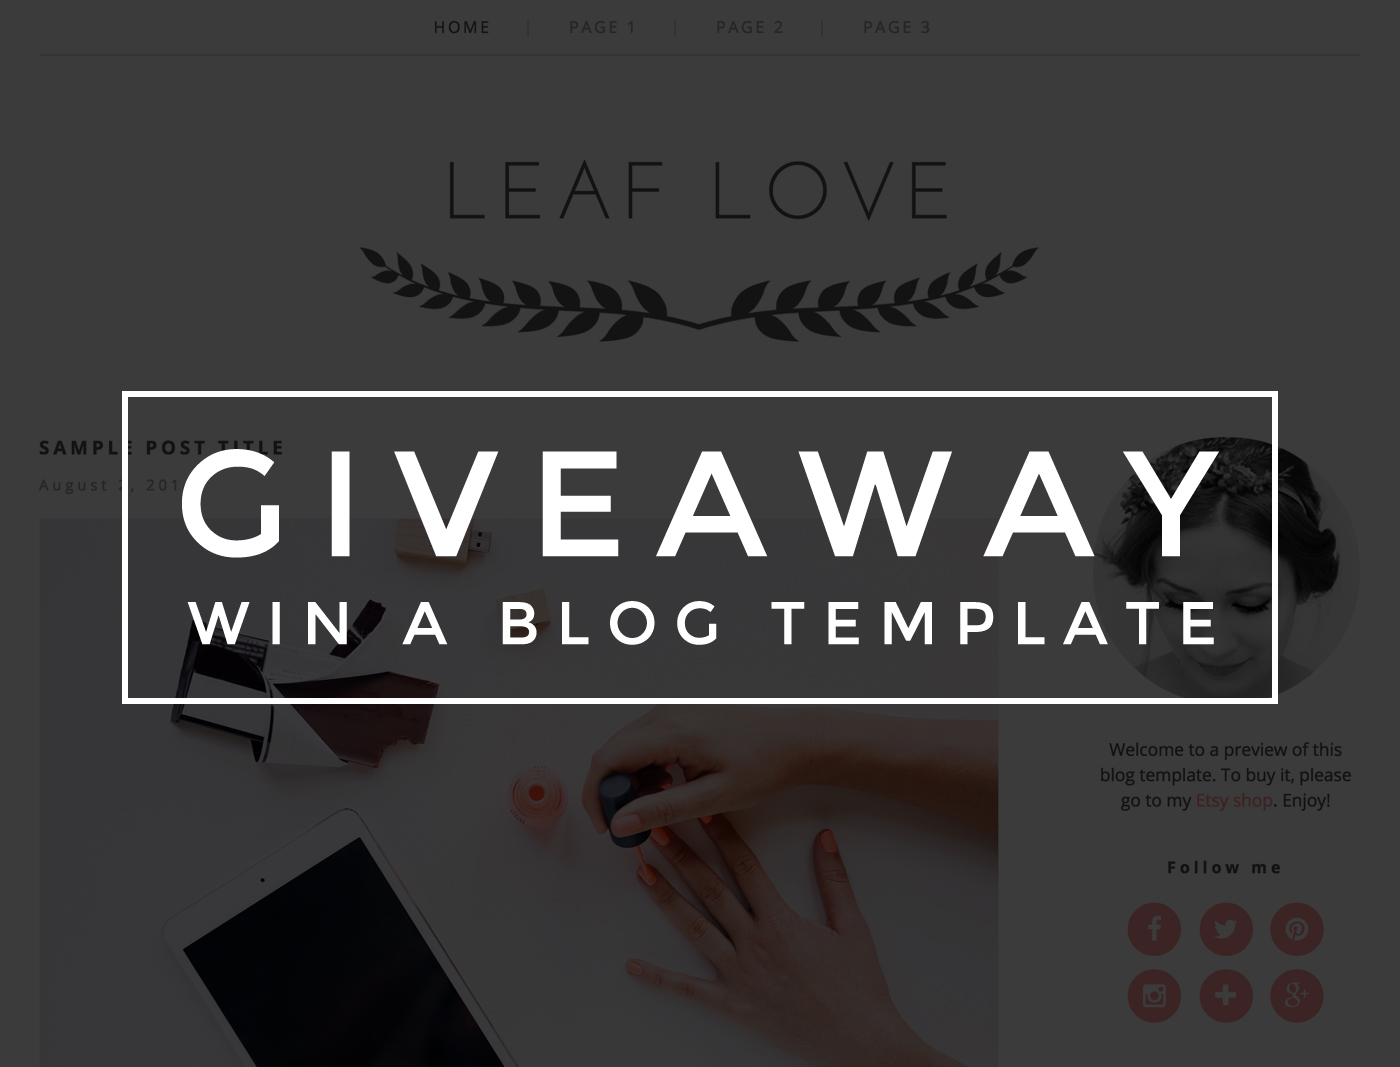 Giveaway - win a blog template